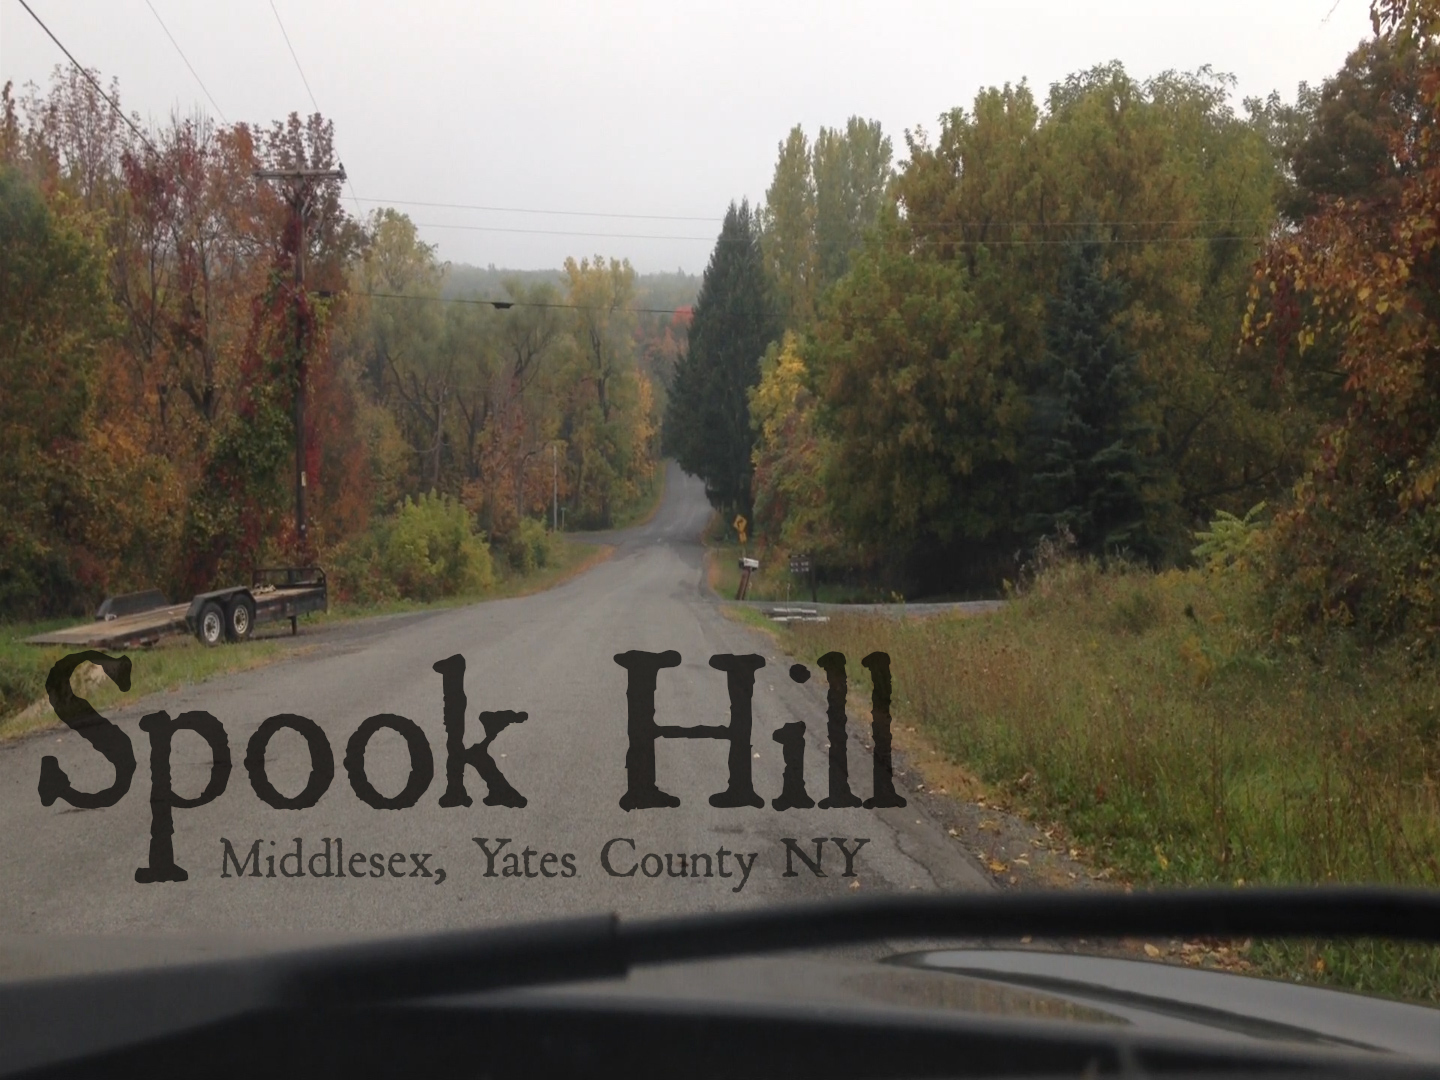 Spook Hill – Middlesex, Yates County, NY [Video]